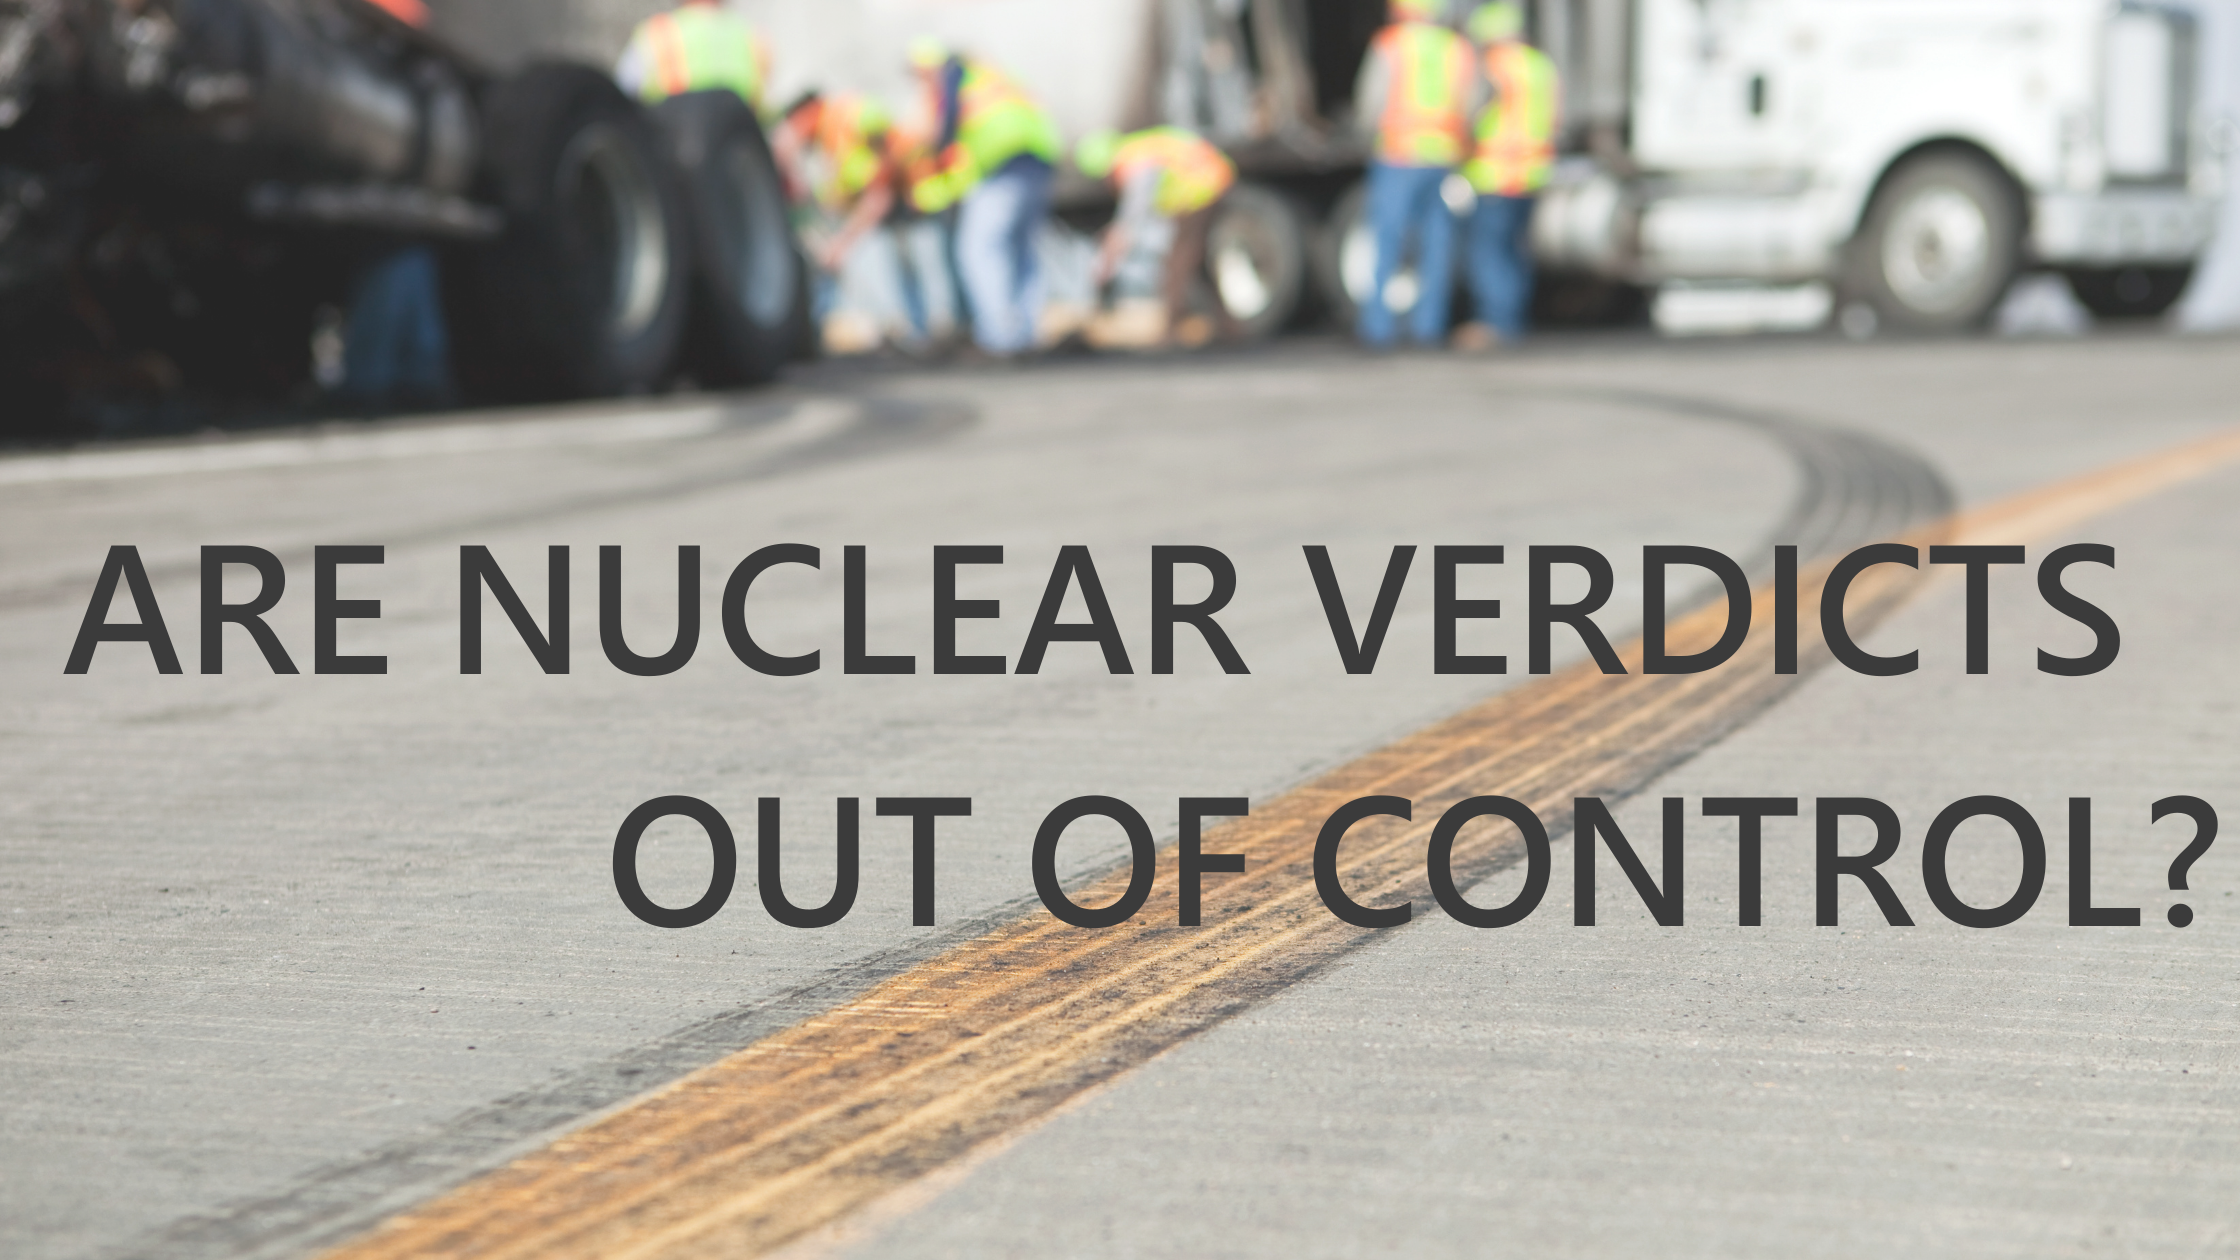 ARE NUCLEAR VERDICTS OUT OF CONTROL?